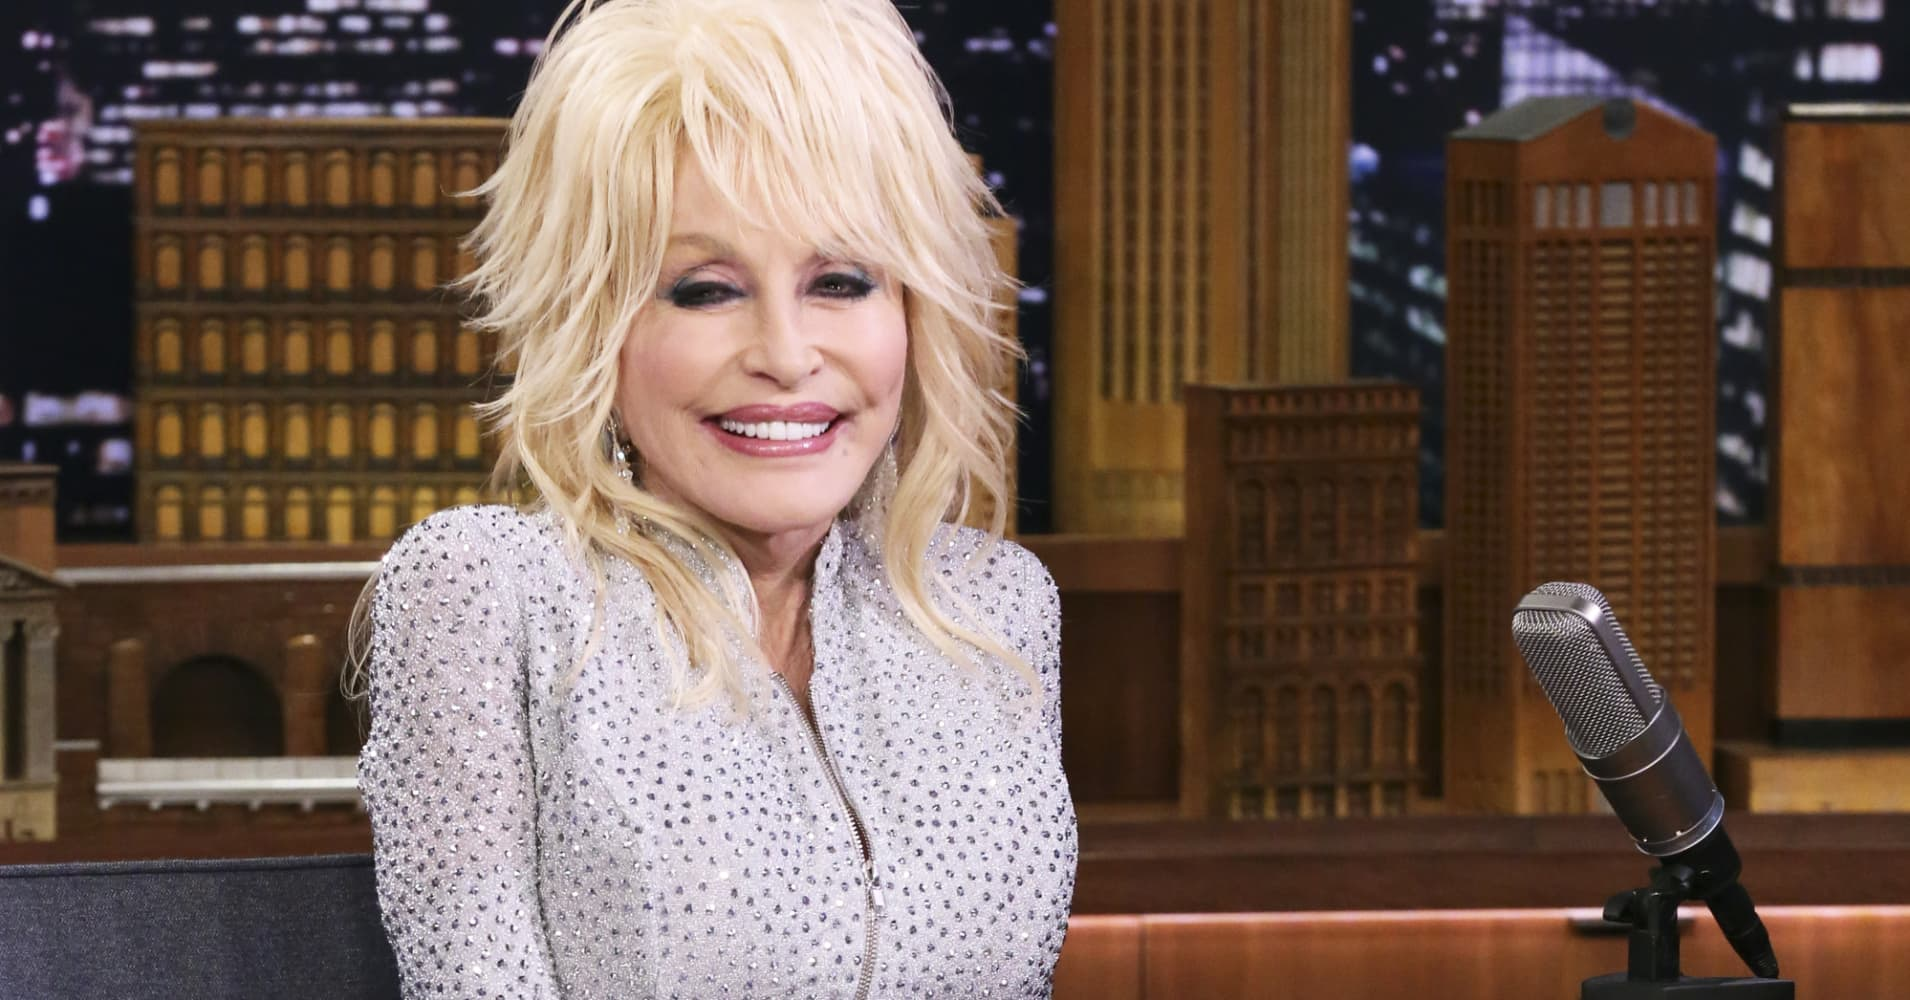 Dolly Parton on The Tonight Show with Jimmy Fallon.